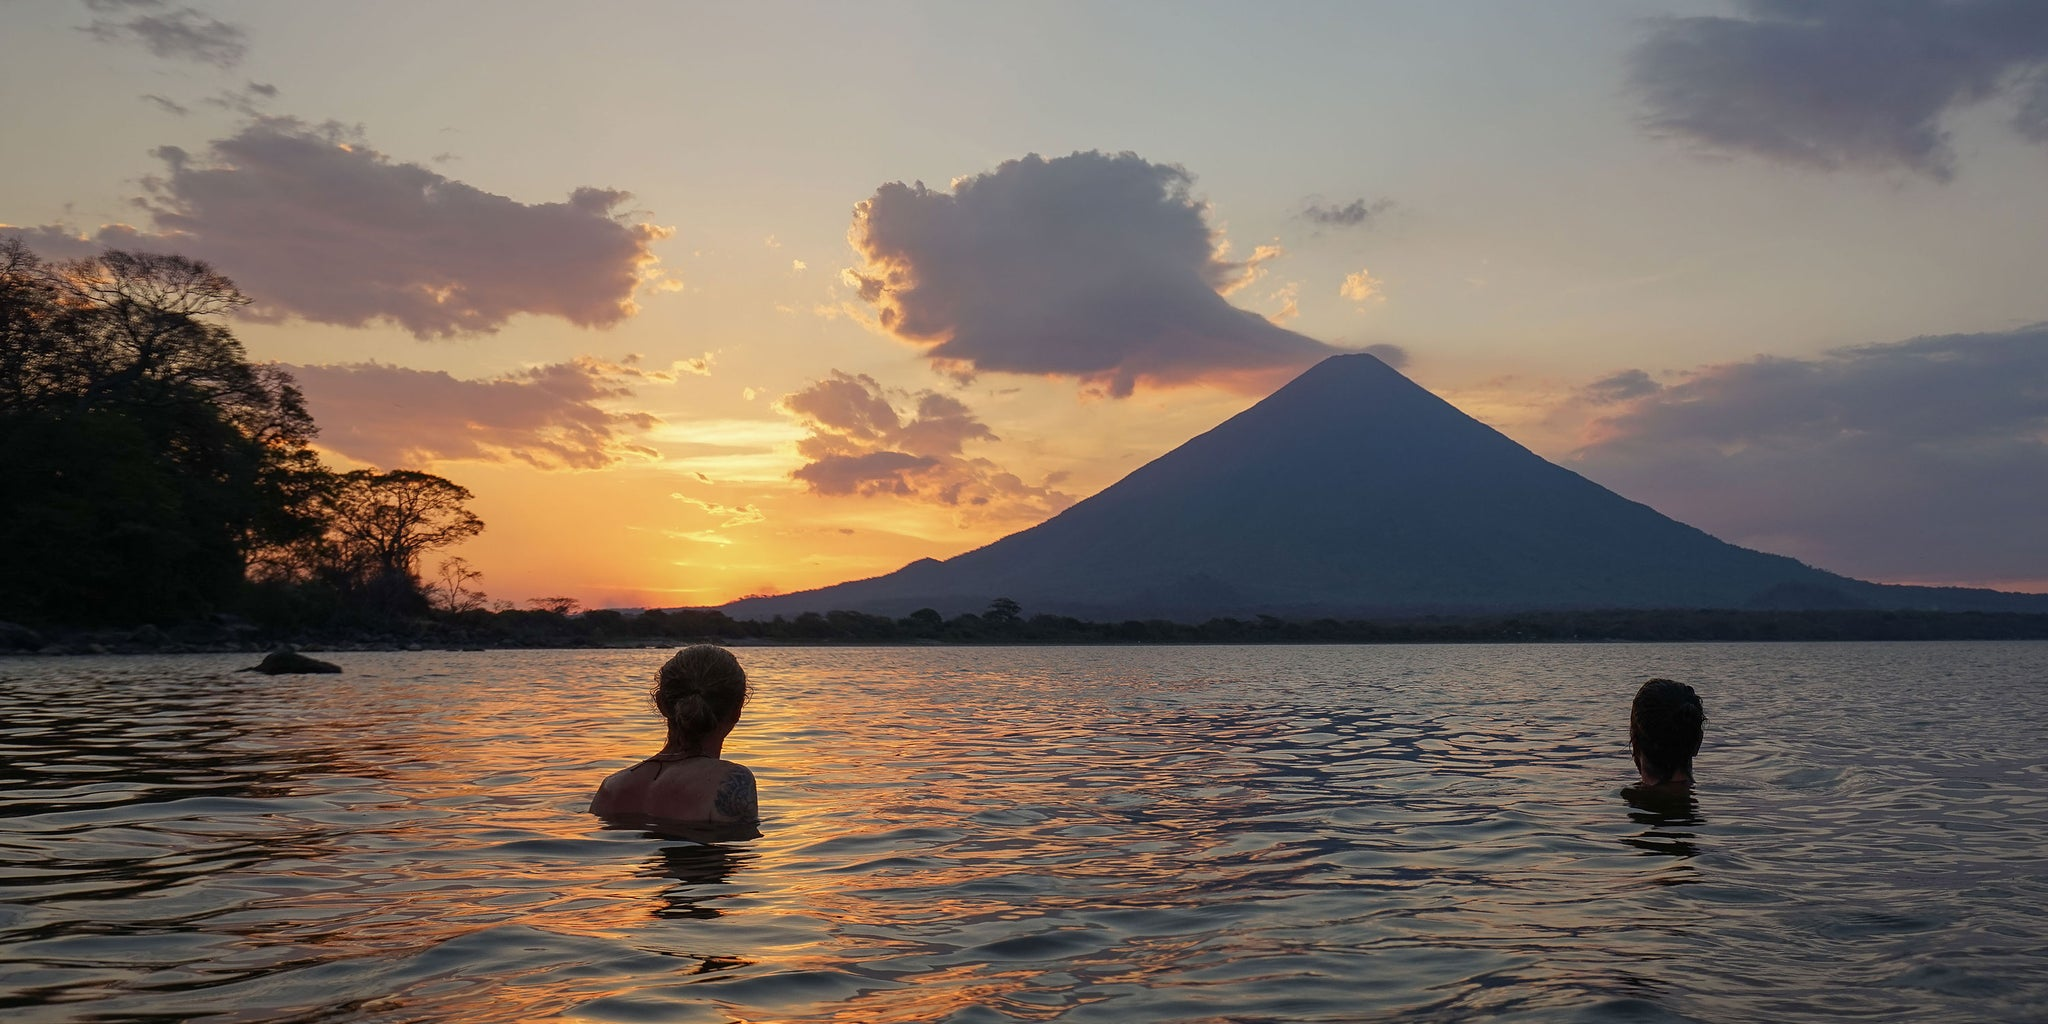 Bather - Excellent Adventures - Swimming in Nicaragua during sunset